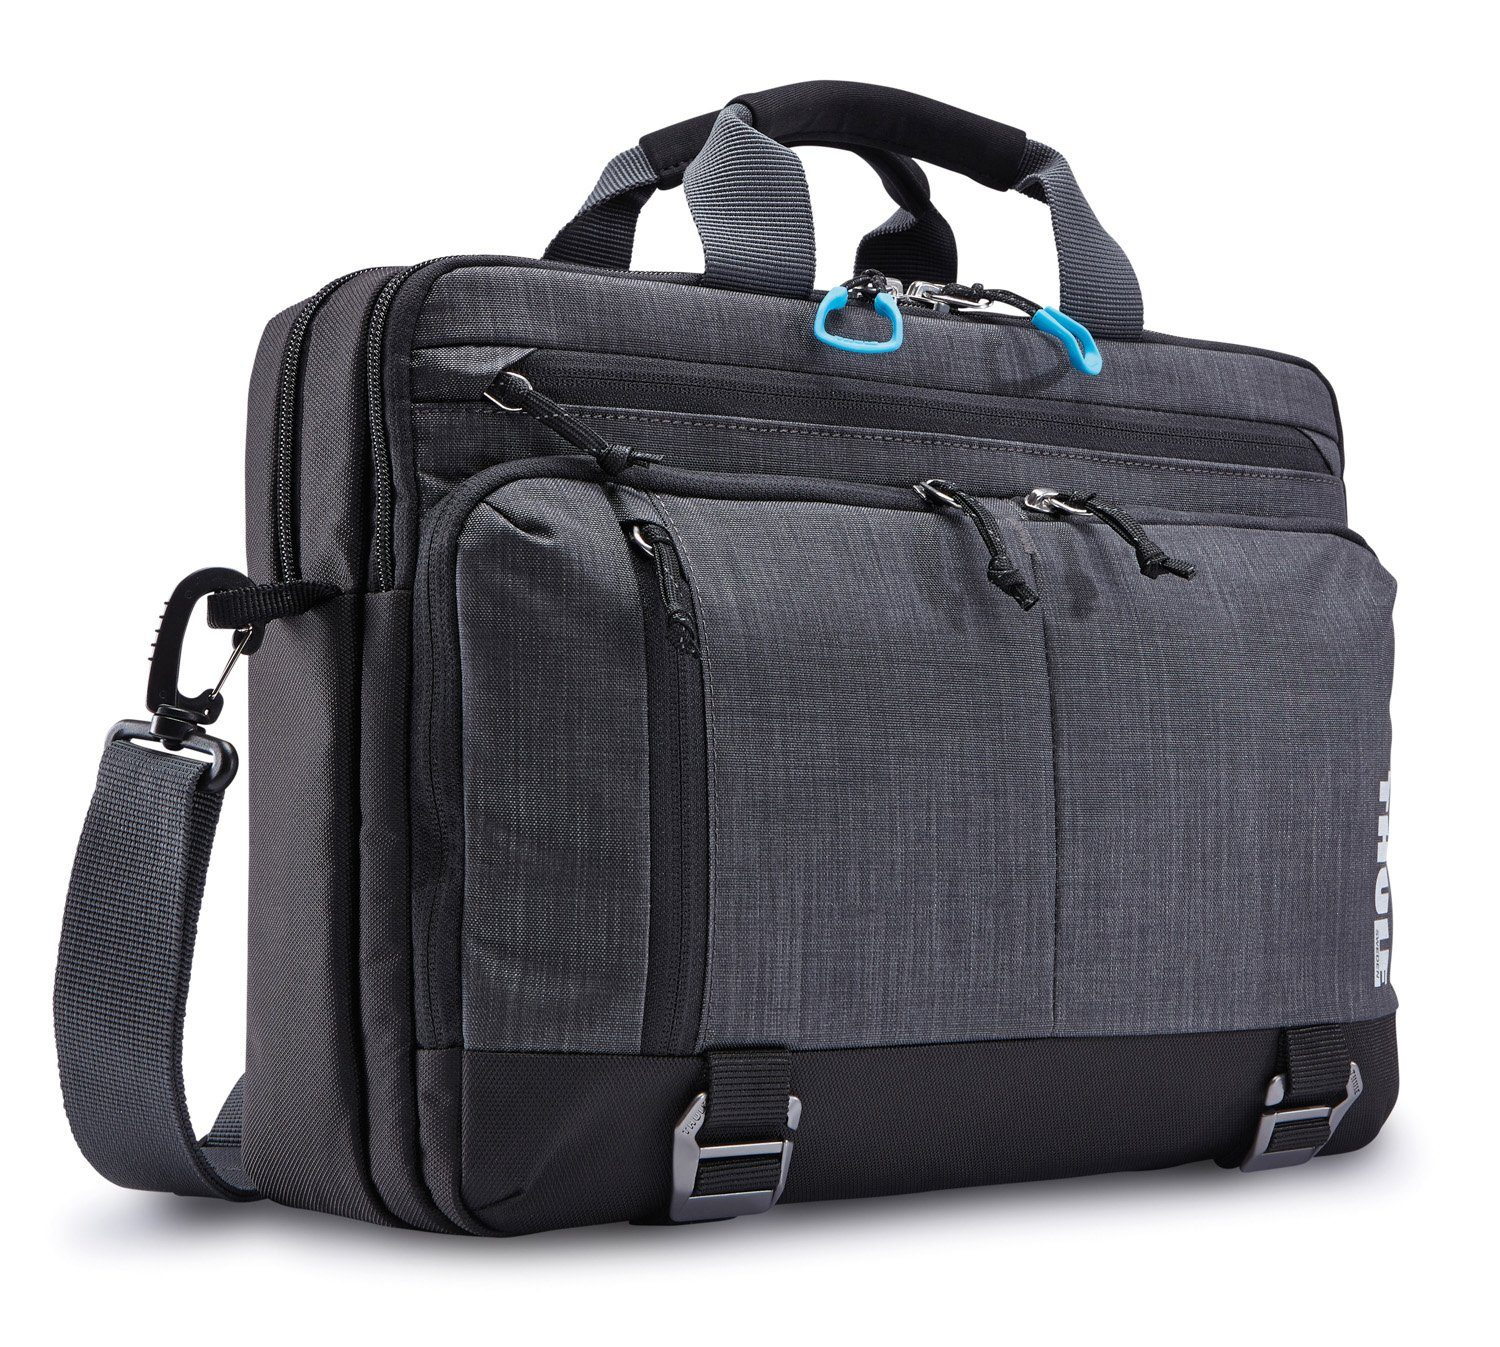 "Thule Notebooktasche für MacBook Pro 15"" & Tablet bis 10,1"" »Strävan«"